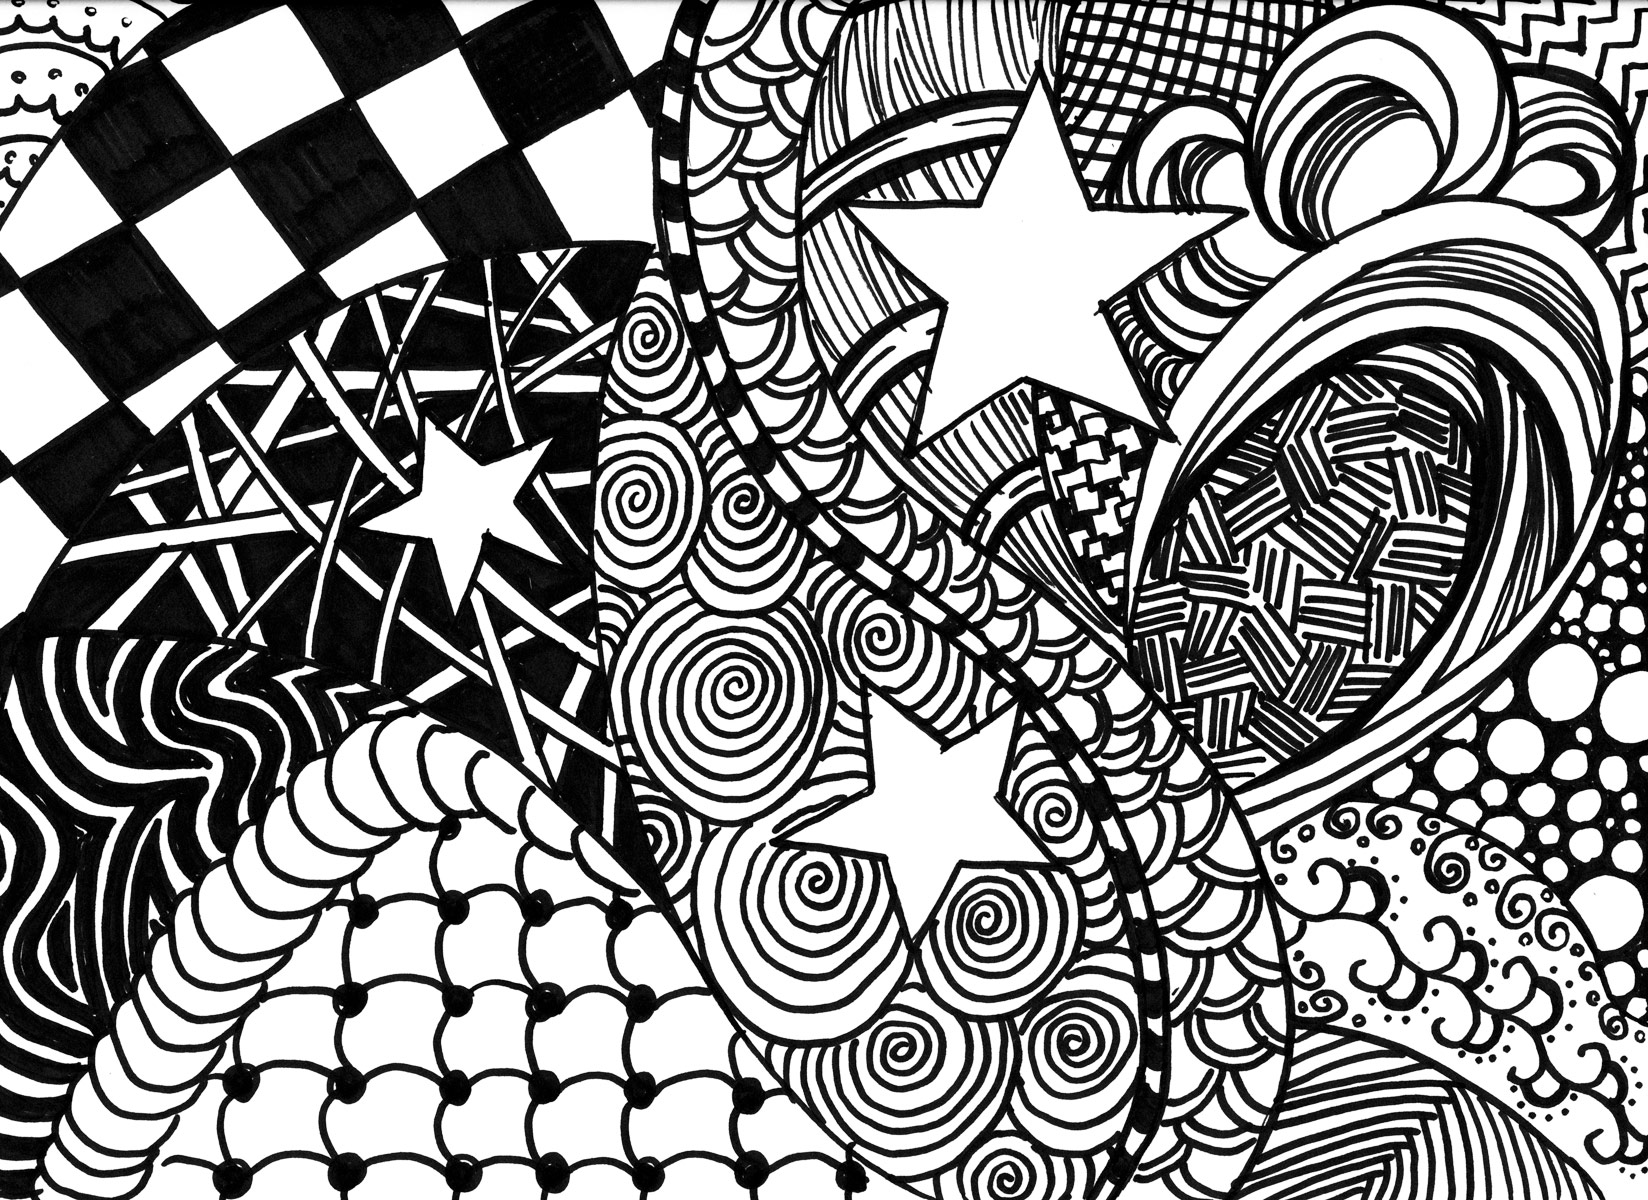 Basic Art Designs : Doodle art drawing at getdrawings free for personal use